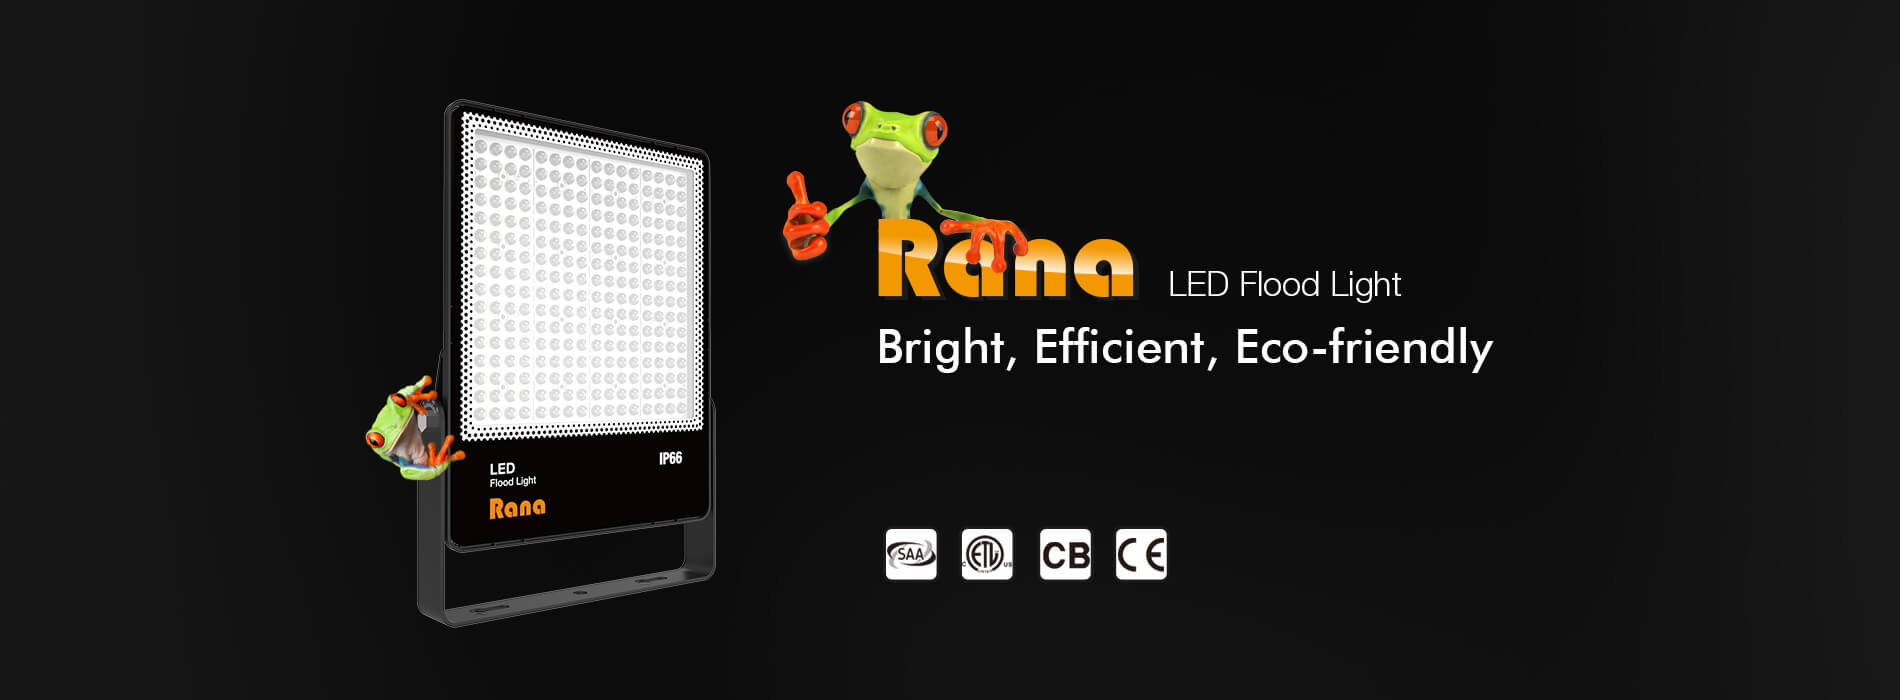 Rana LED Flood Light